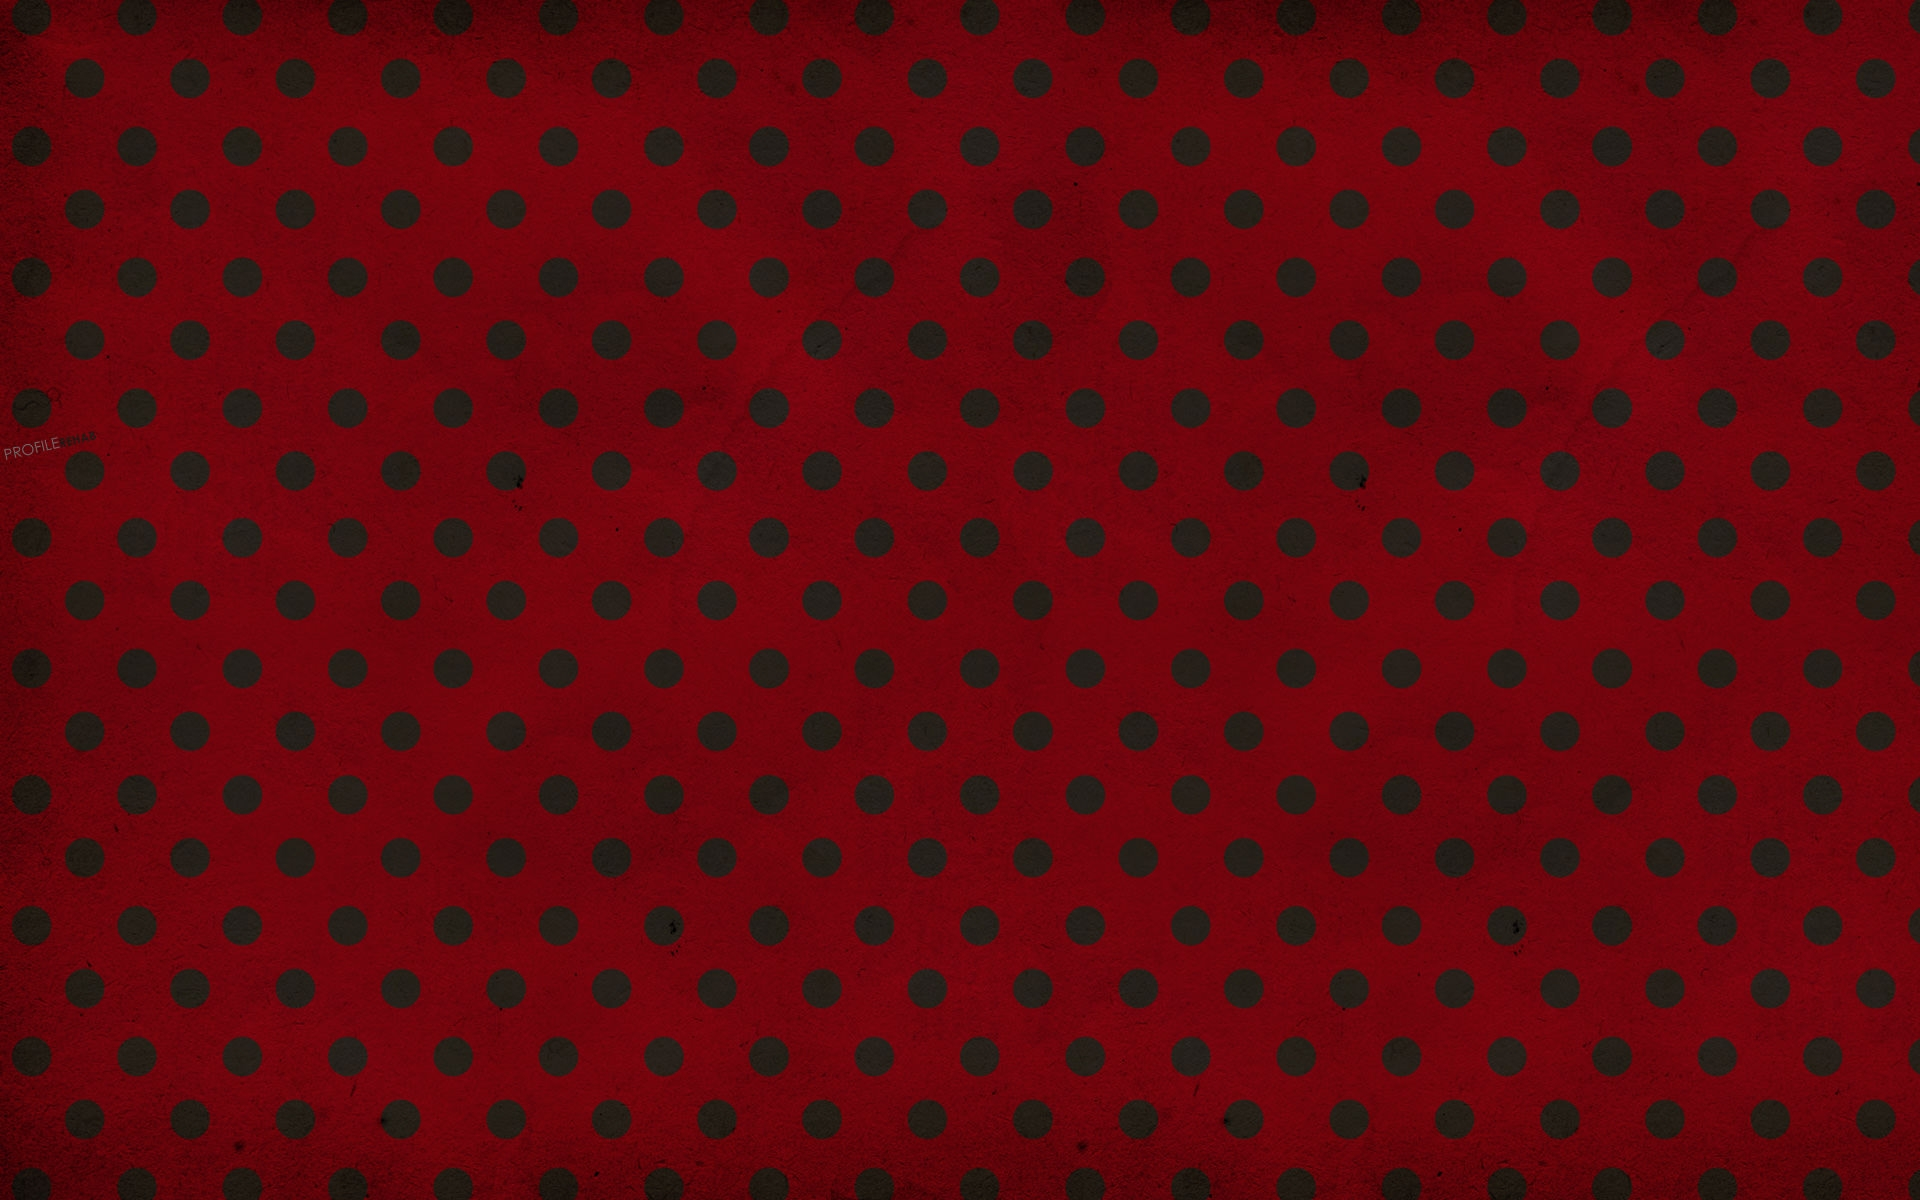 10 vintage red backgrounds hq backgrounds freecreatives for Black and red wallpaper designs